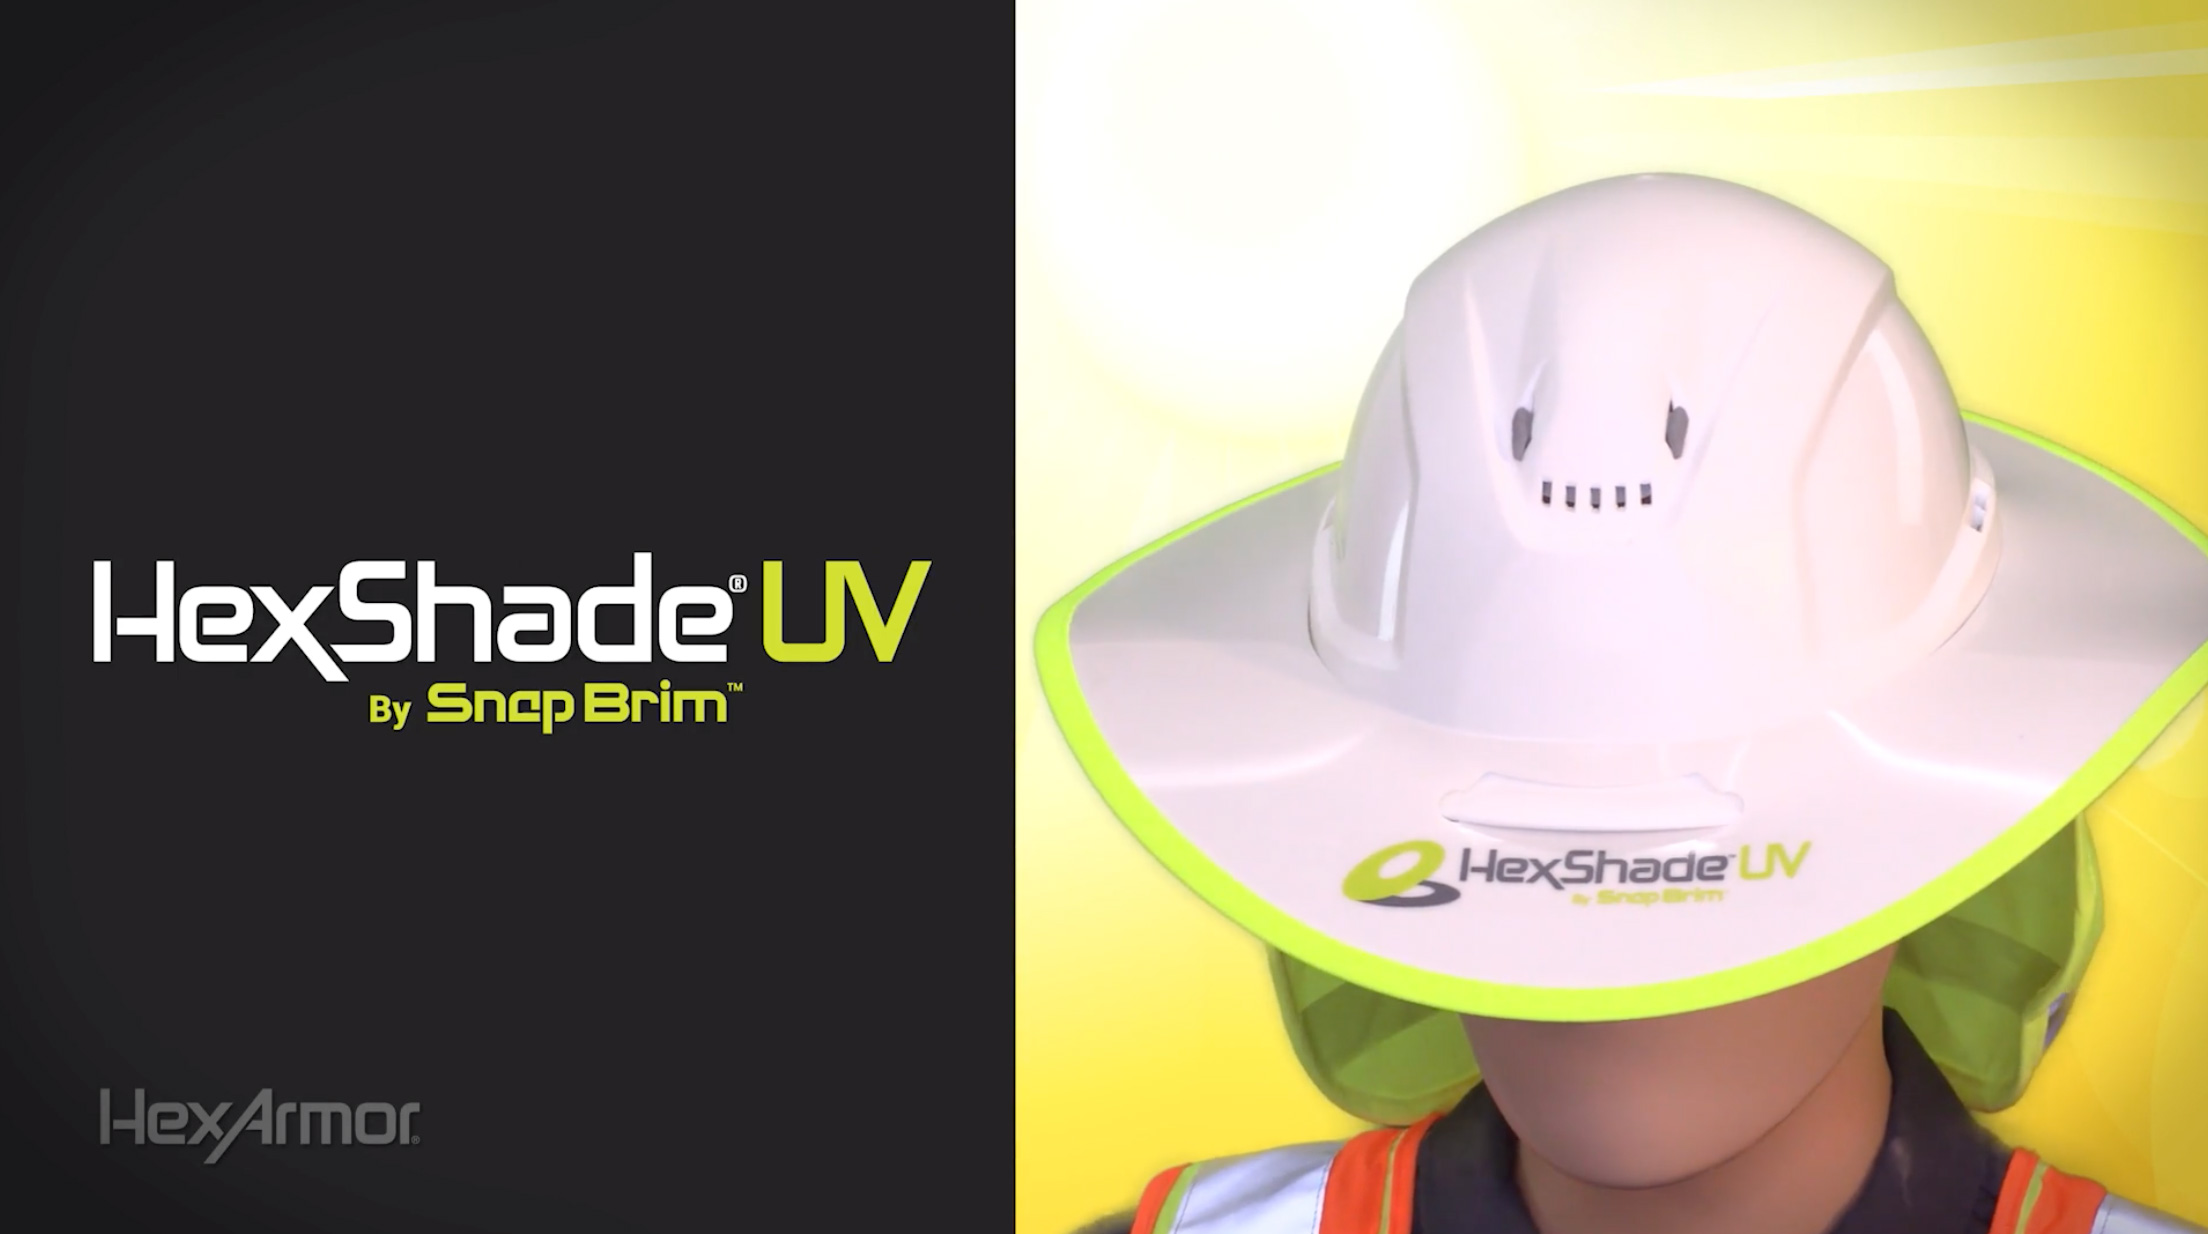 HexShade® UV by SnapBrim™ | Fast, Cool, Relief | Product Overview